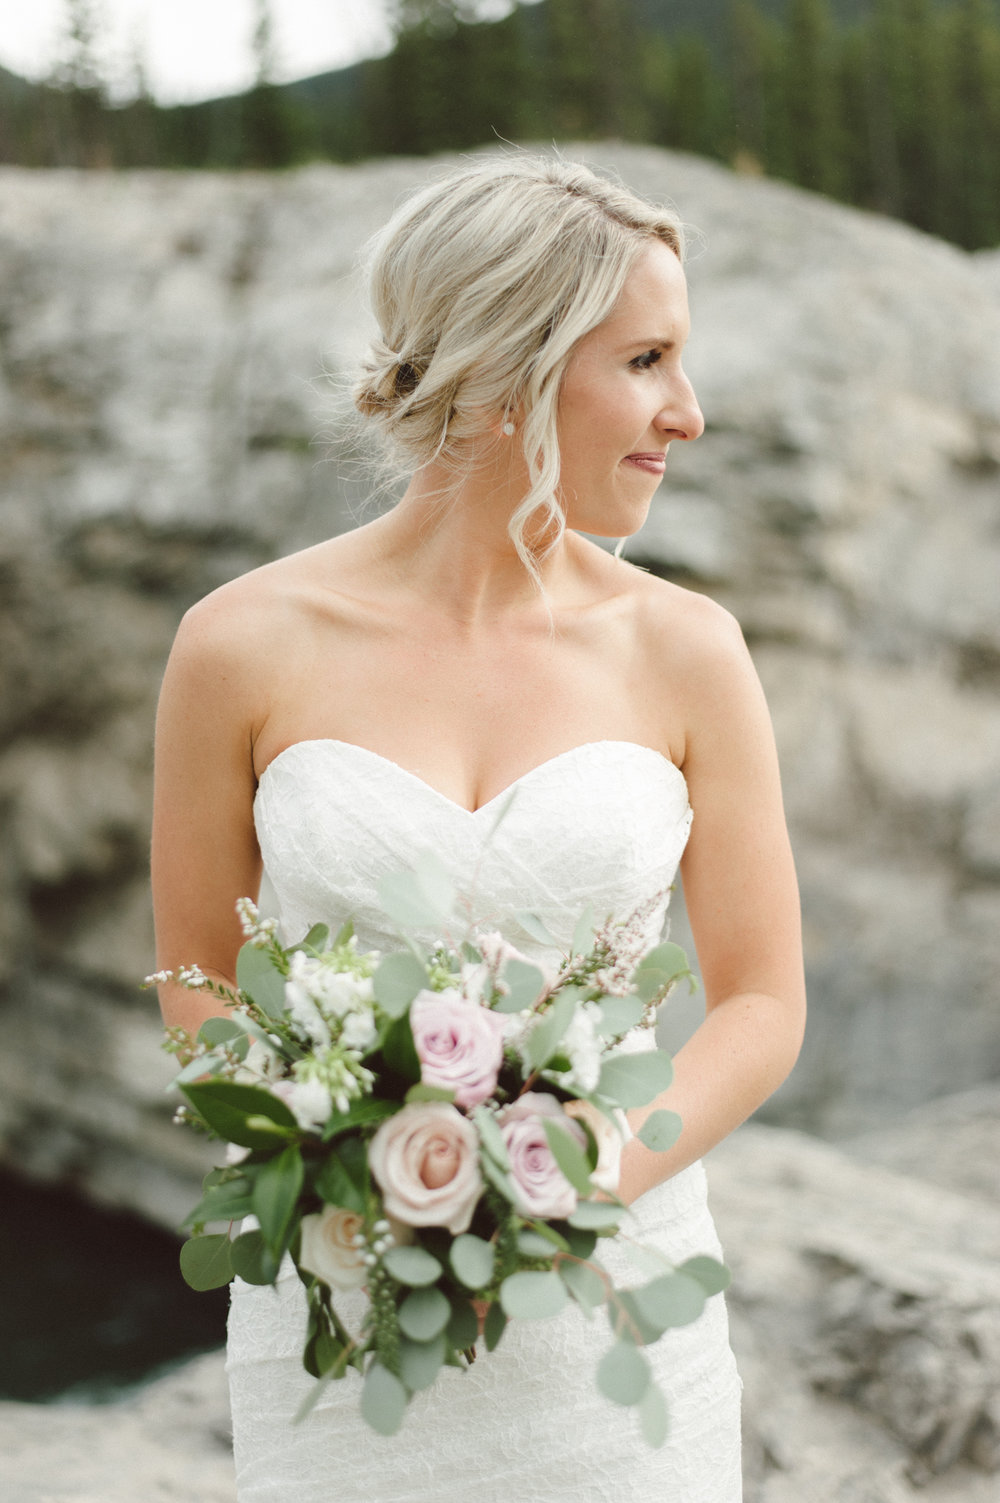 Rocky Mountain Banff Calgary Alberta Wedding-Jessika Hunter Photo-107.JPG